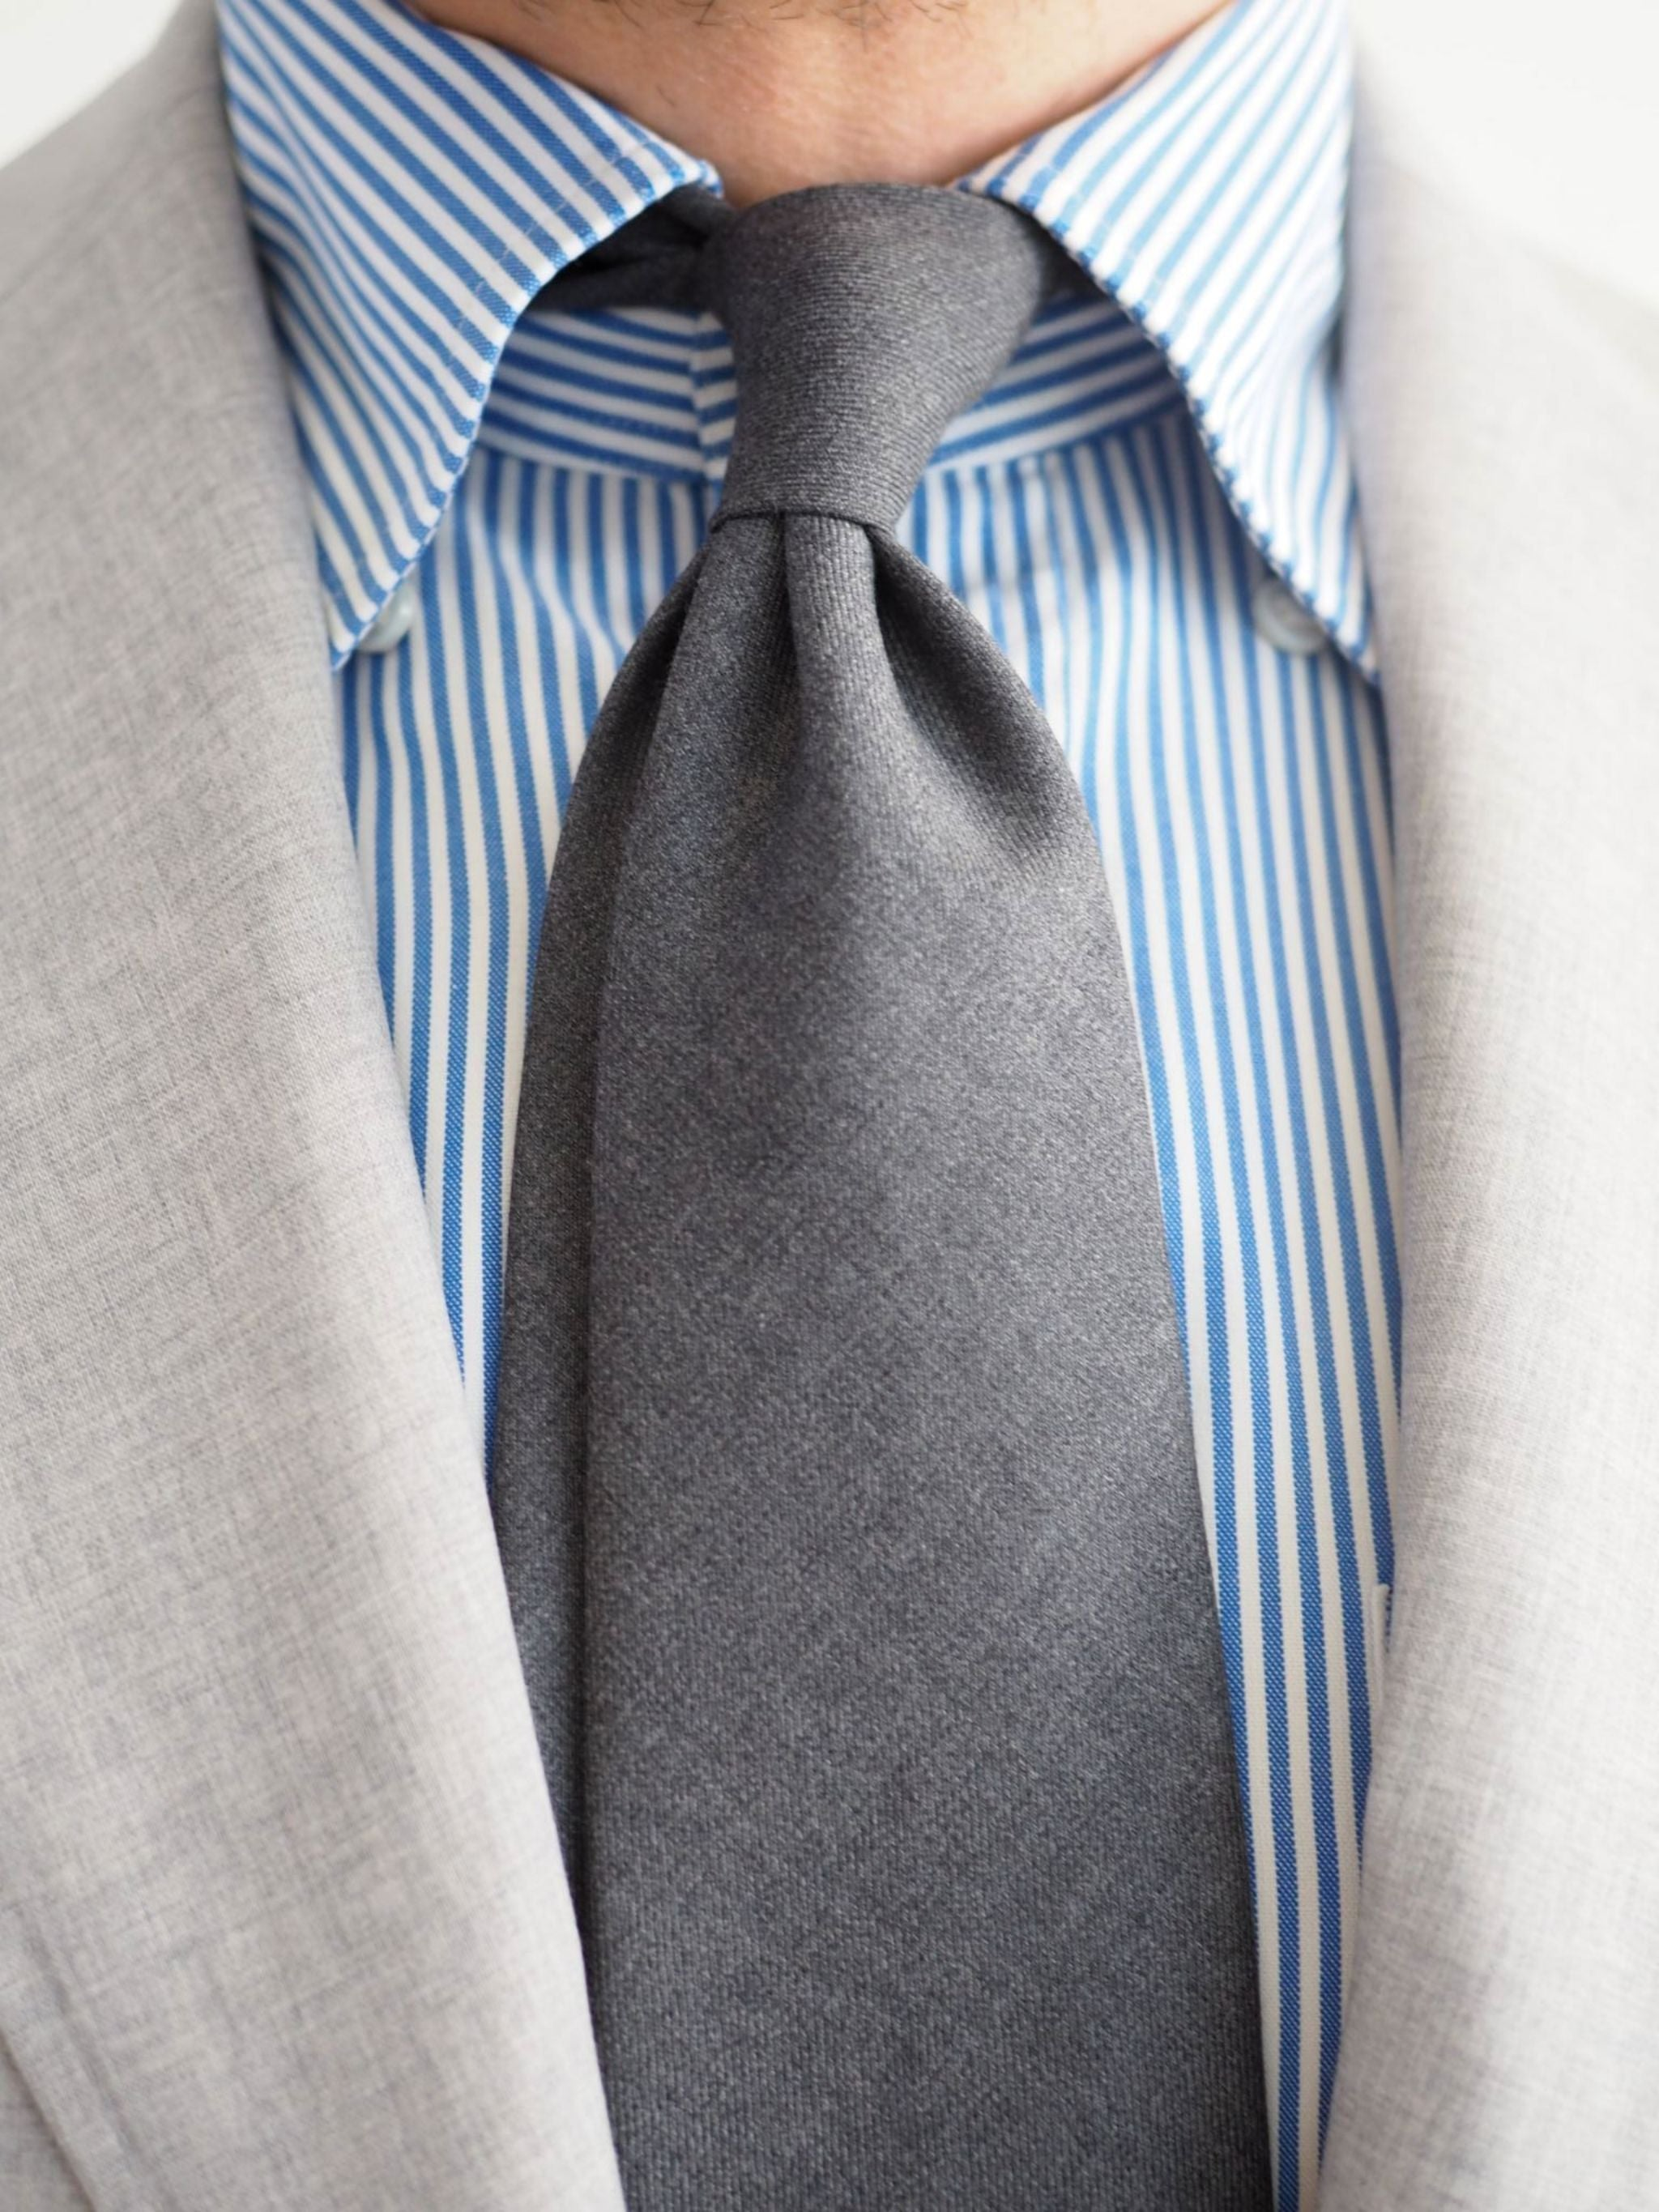 Favorite suiits - DLA gray wool tie with light gray suit and striped shirt